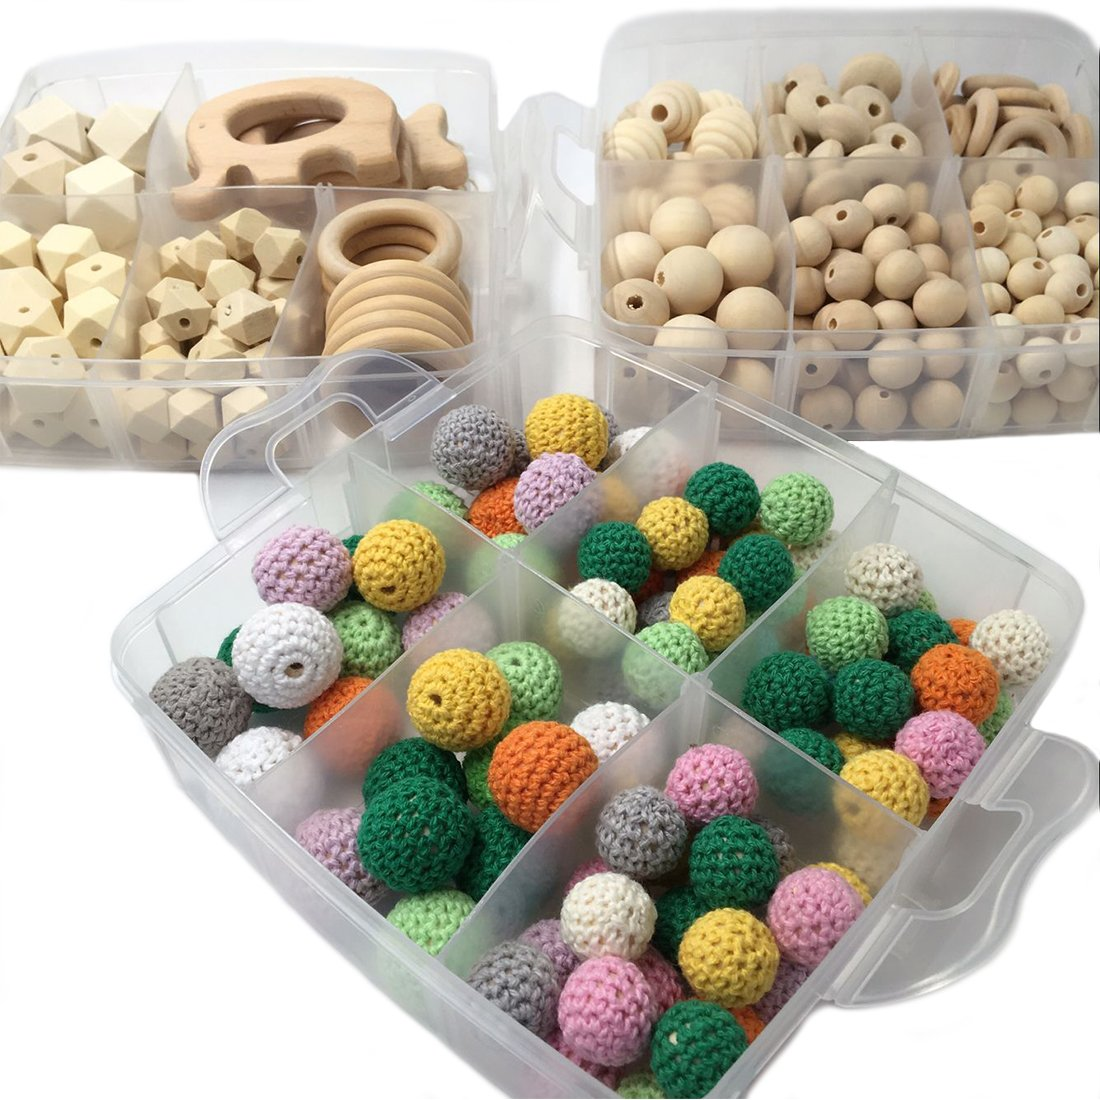 Amyster DIY Nursing Jewelry Combination Package Crochet Beads Blending Natural Round Geometry Wooden Beads Wood Ring Creative Freedom by Amyster